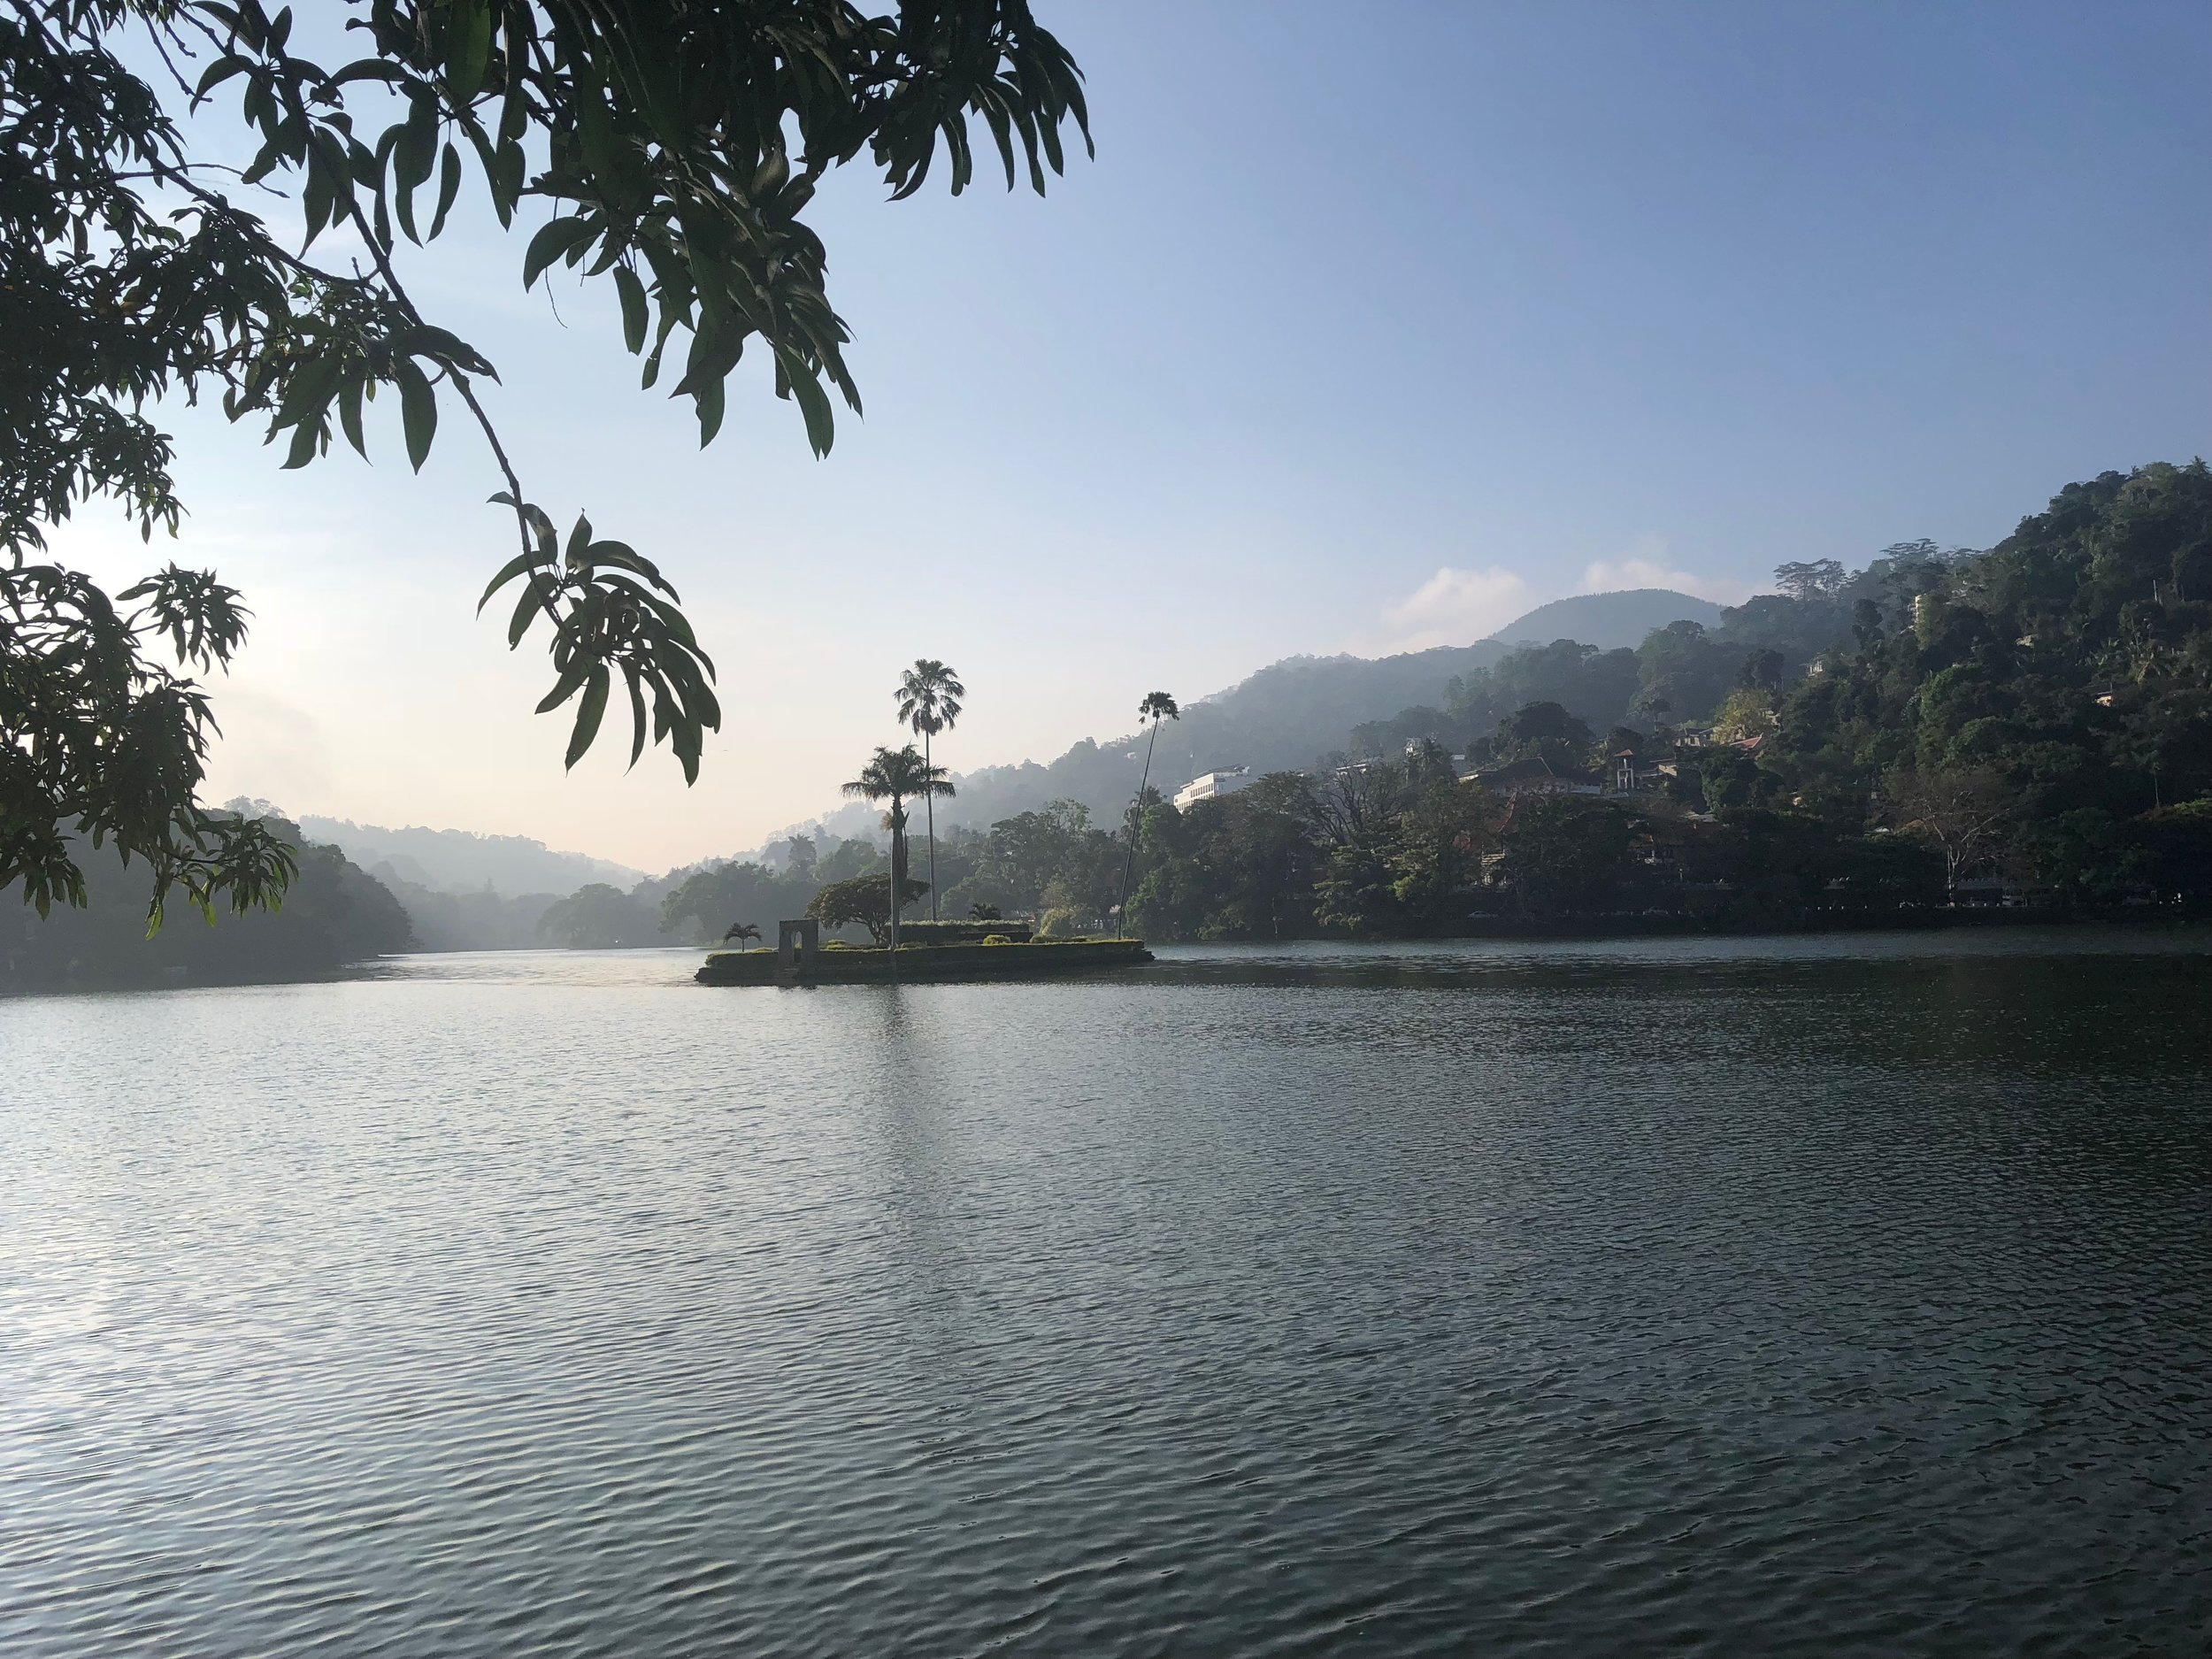 Morning view of The Lake of Kandy